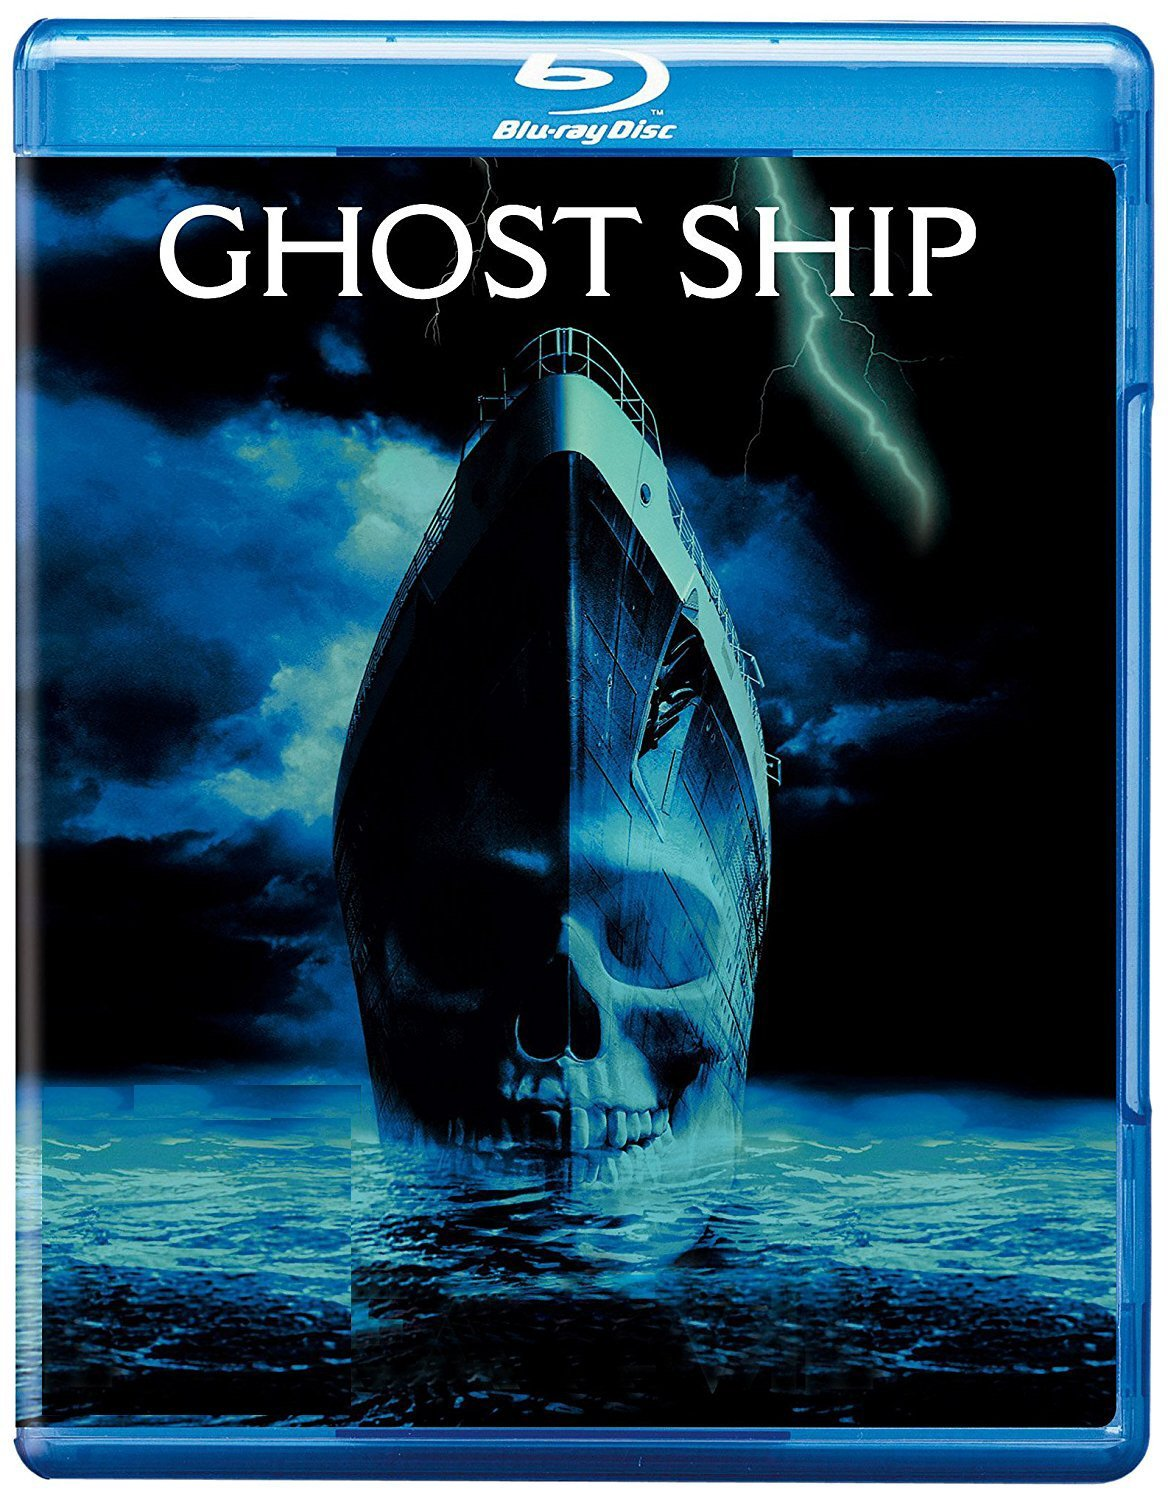 GHOST SHIP(2002) BLU RAY IMPORT REGION FREE(usa compatible)